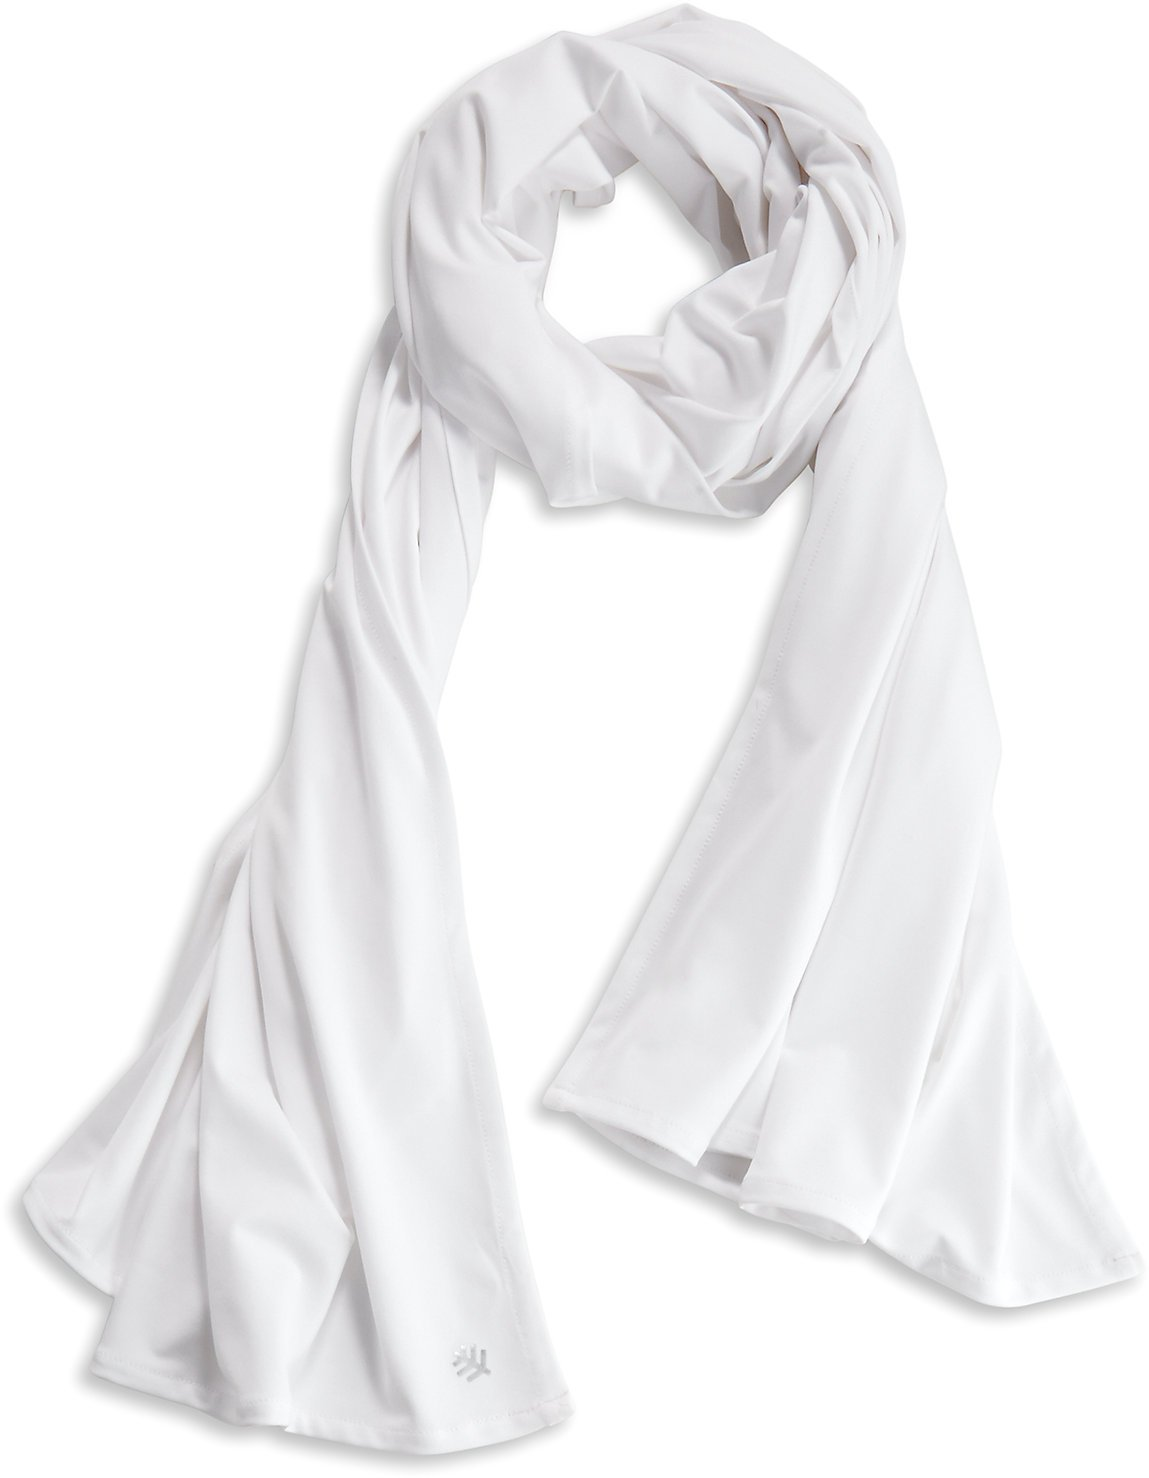 Coolibar UPF 50+ Women's Performance Sun Shawl - Sun Protective (One Size- White) by Coolibar (Image #2)